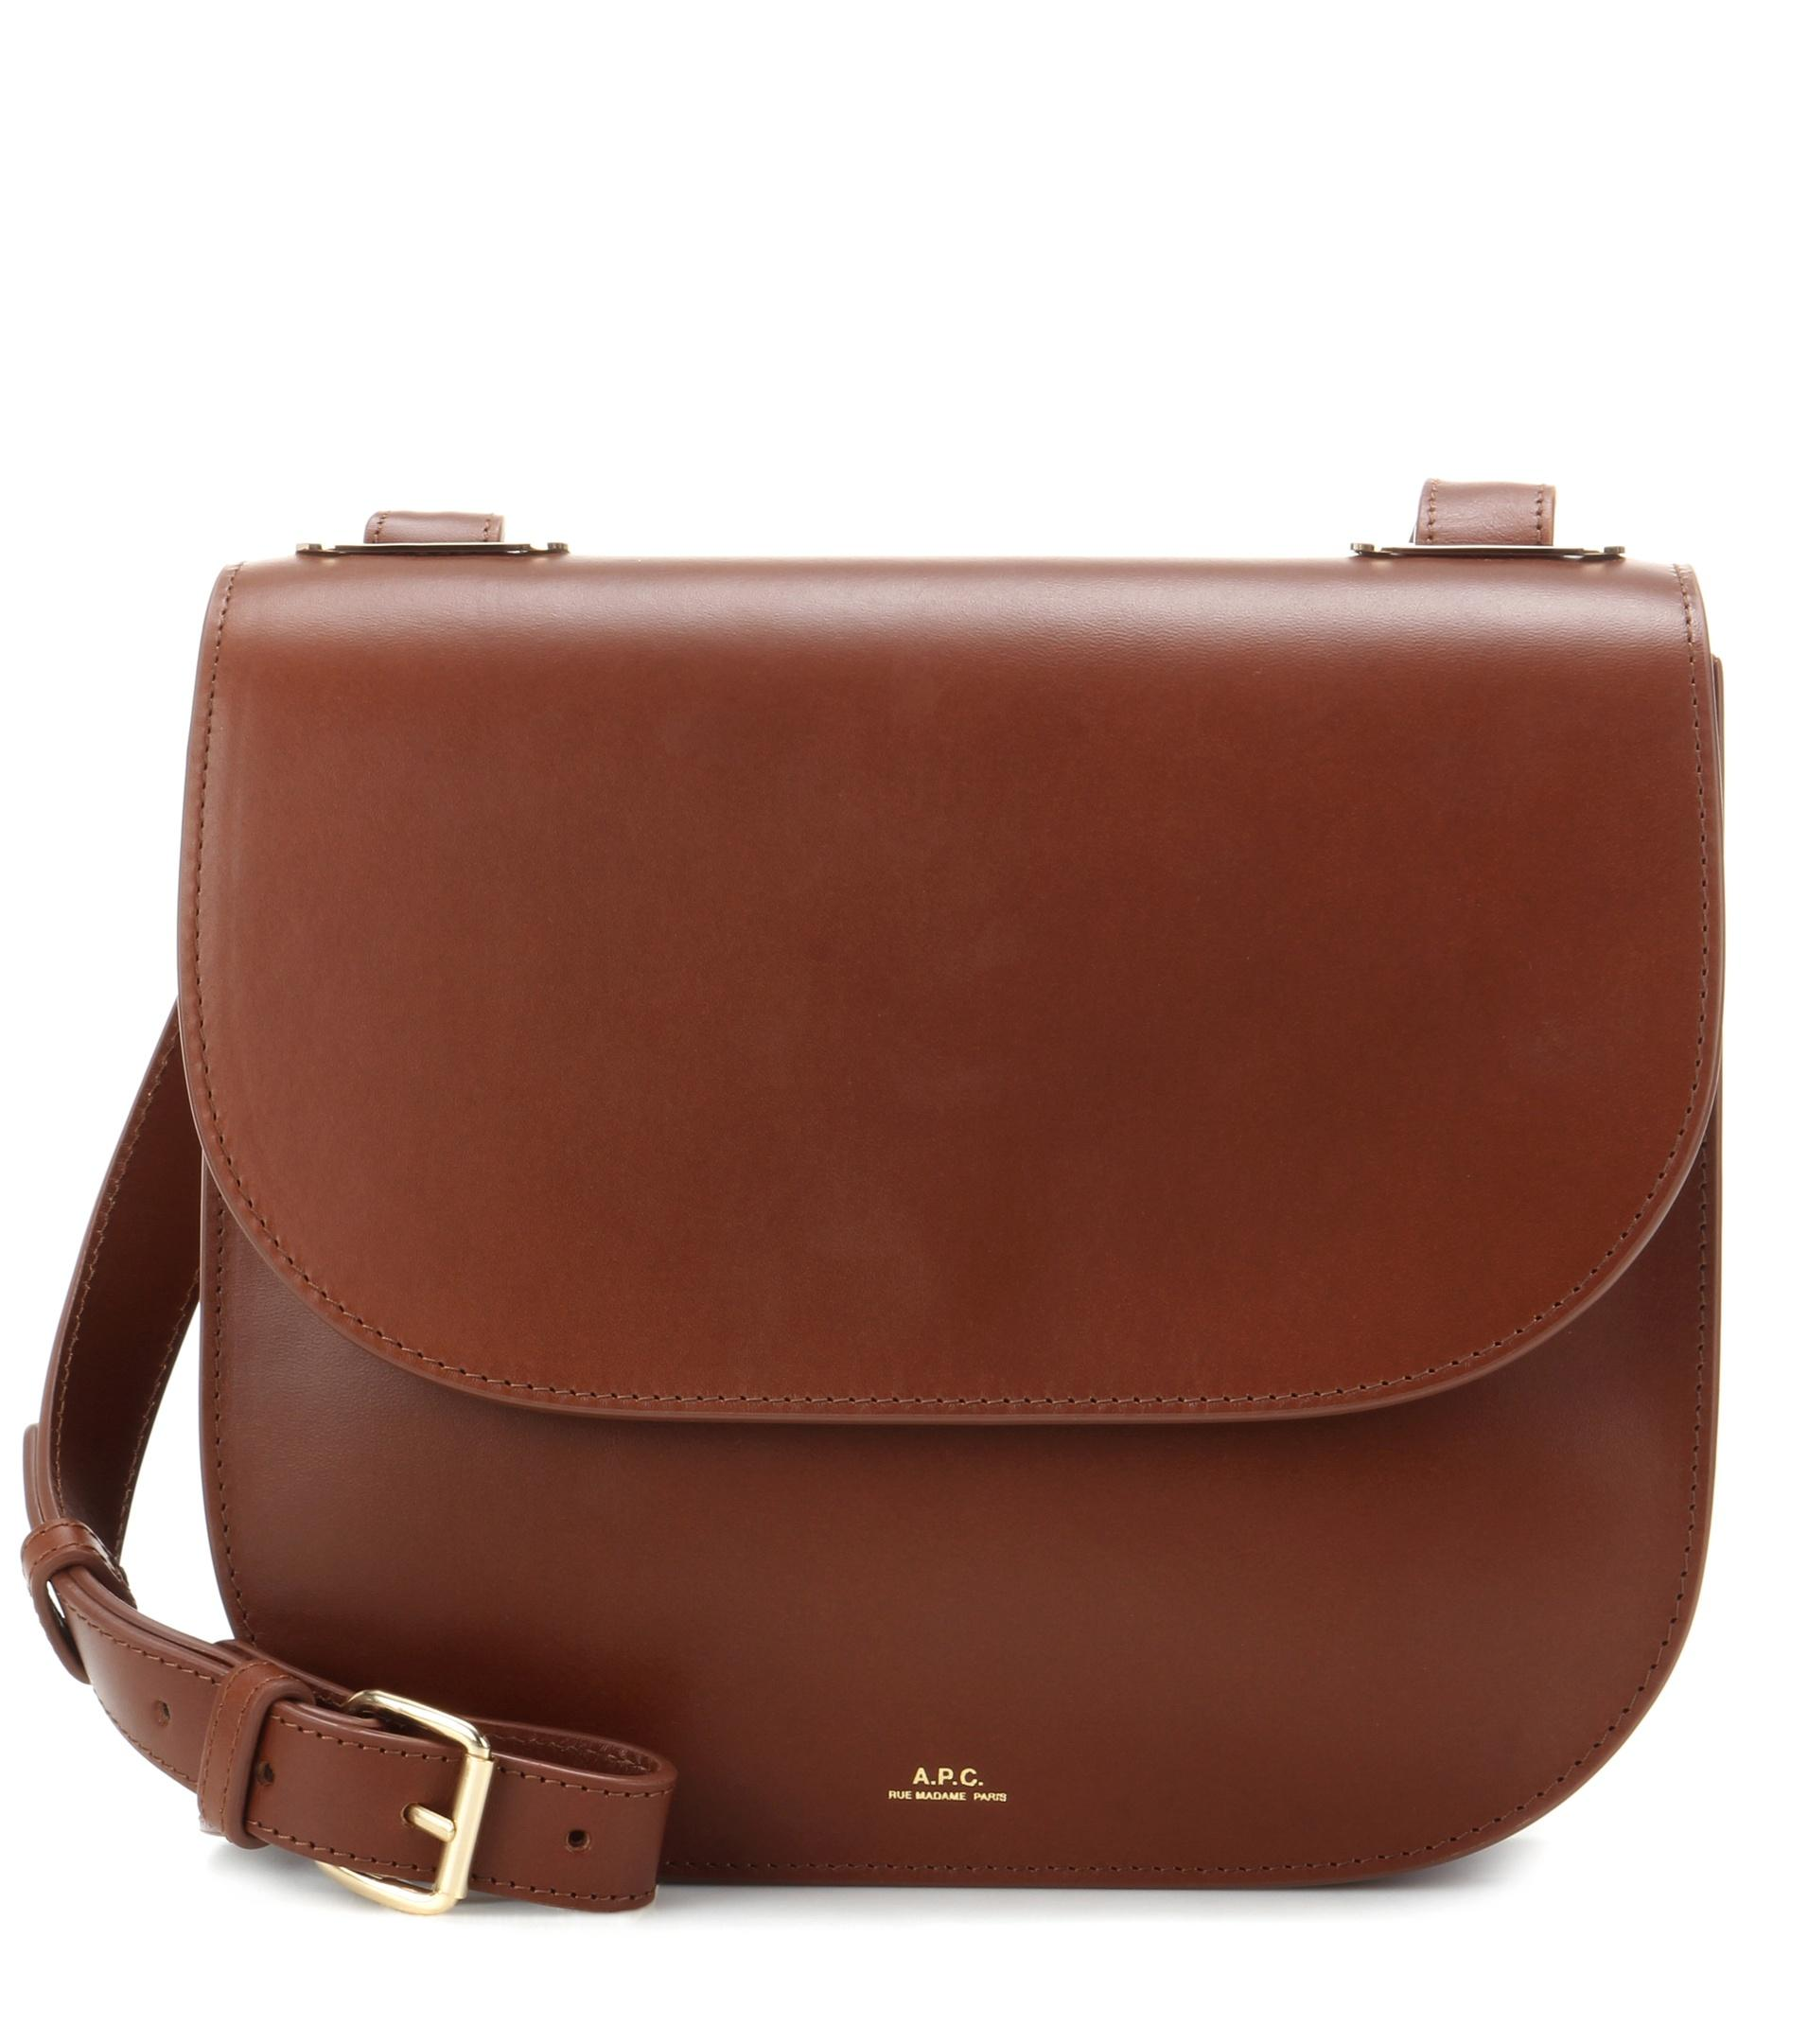 A.p.c. Christie Leather Shoulder Bag in Brown